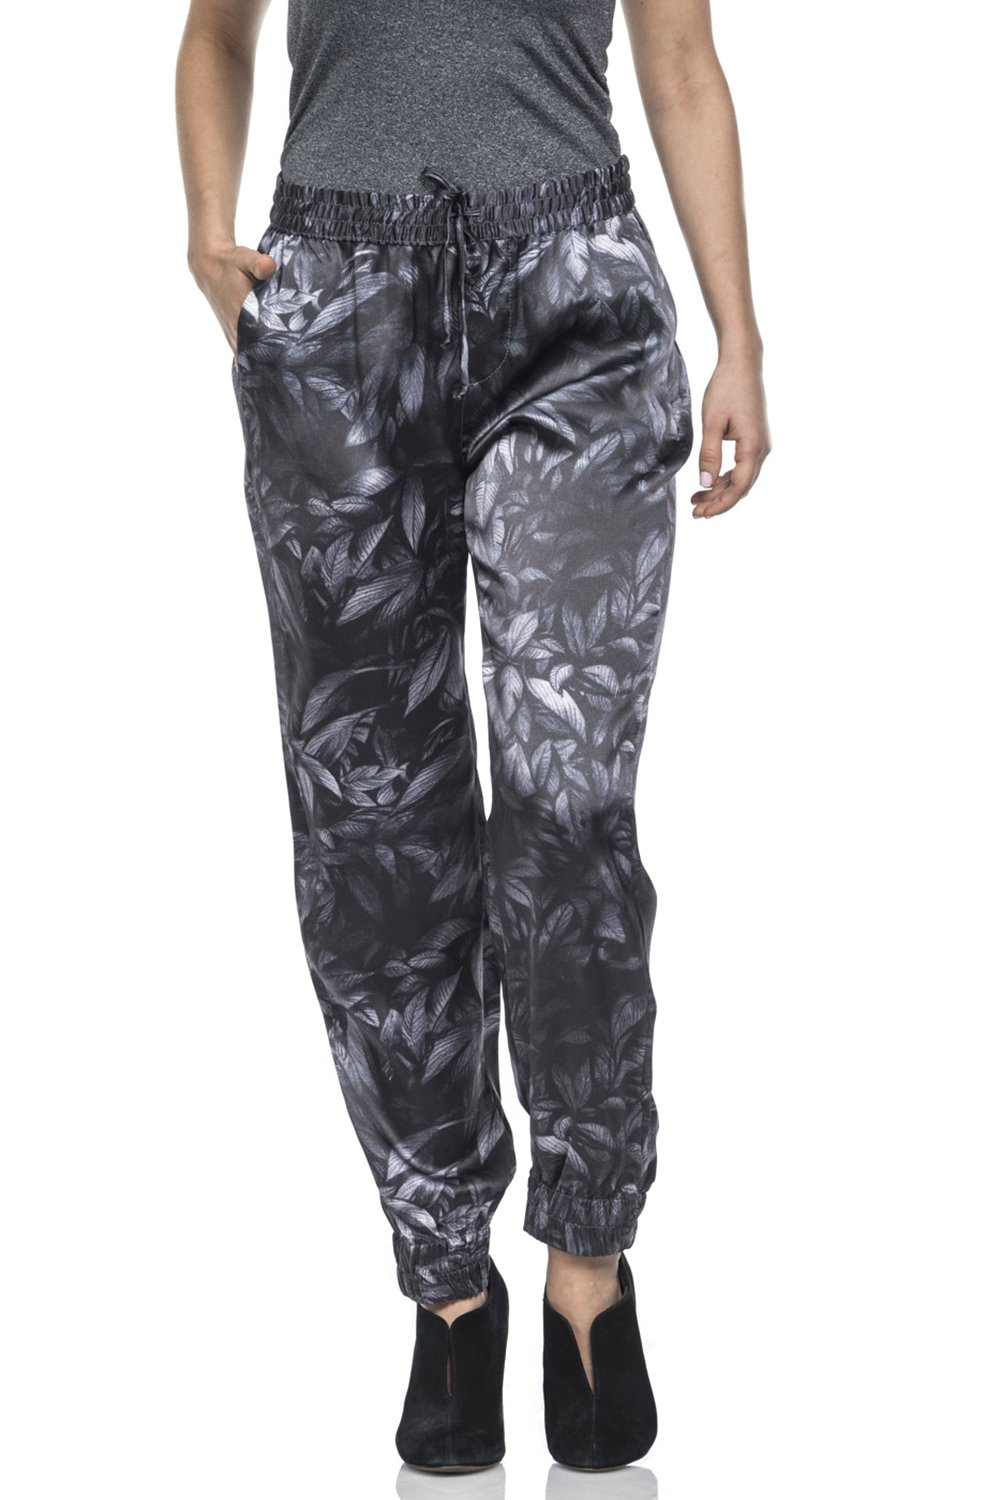 artTECA Women's allover Pant, Tones Of Grey and Silver, Large